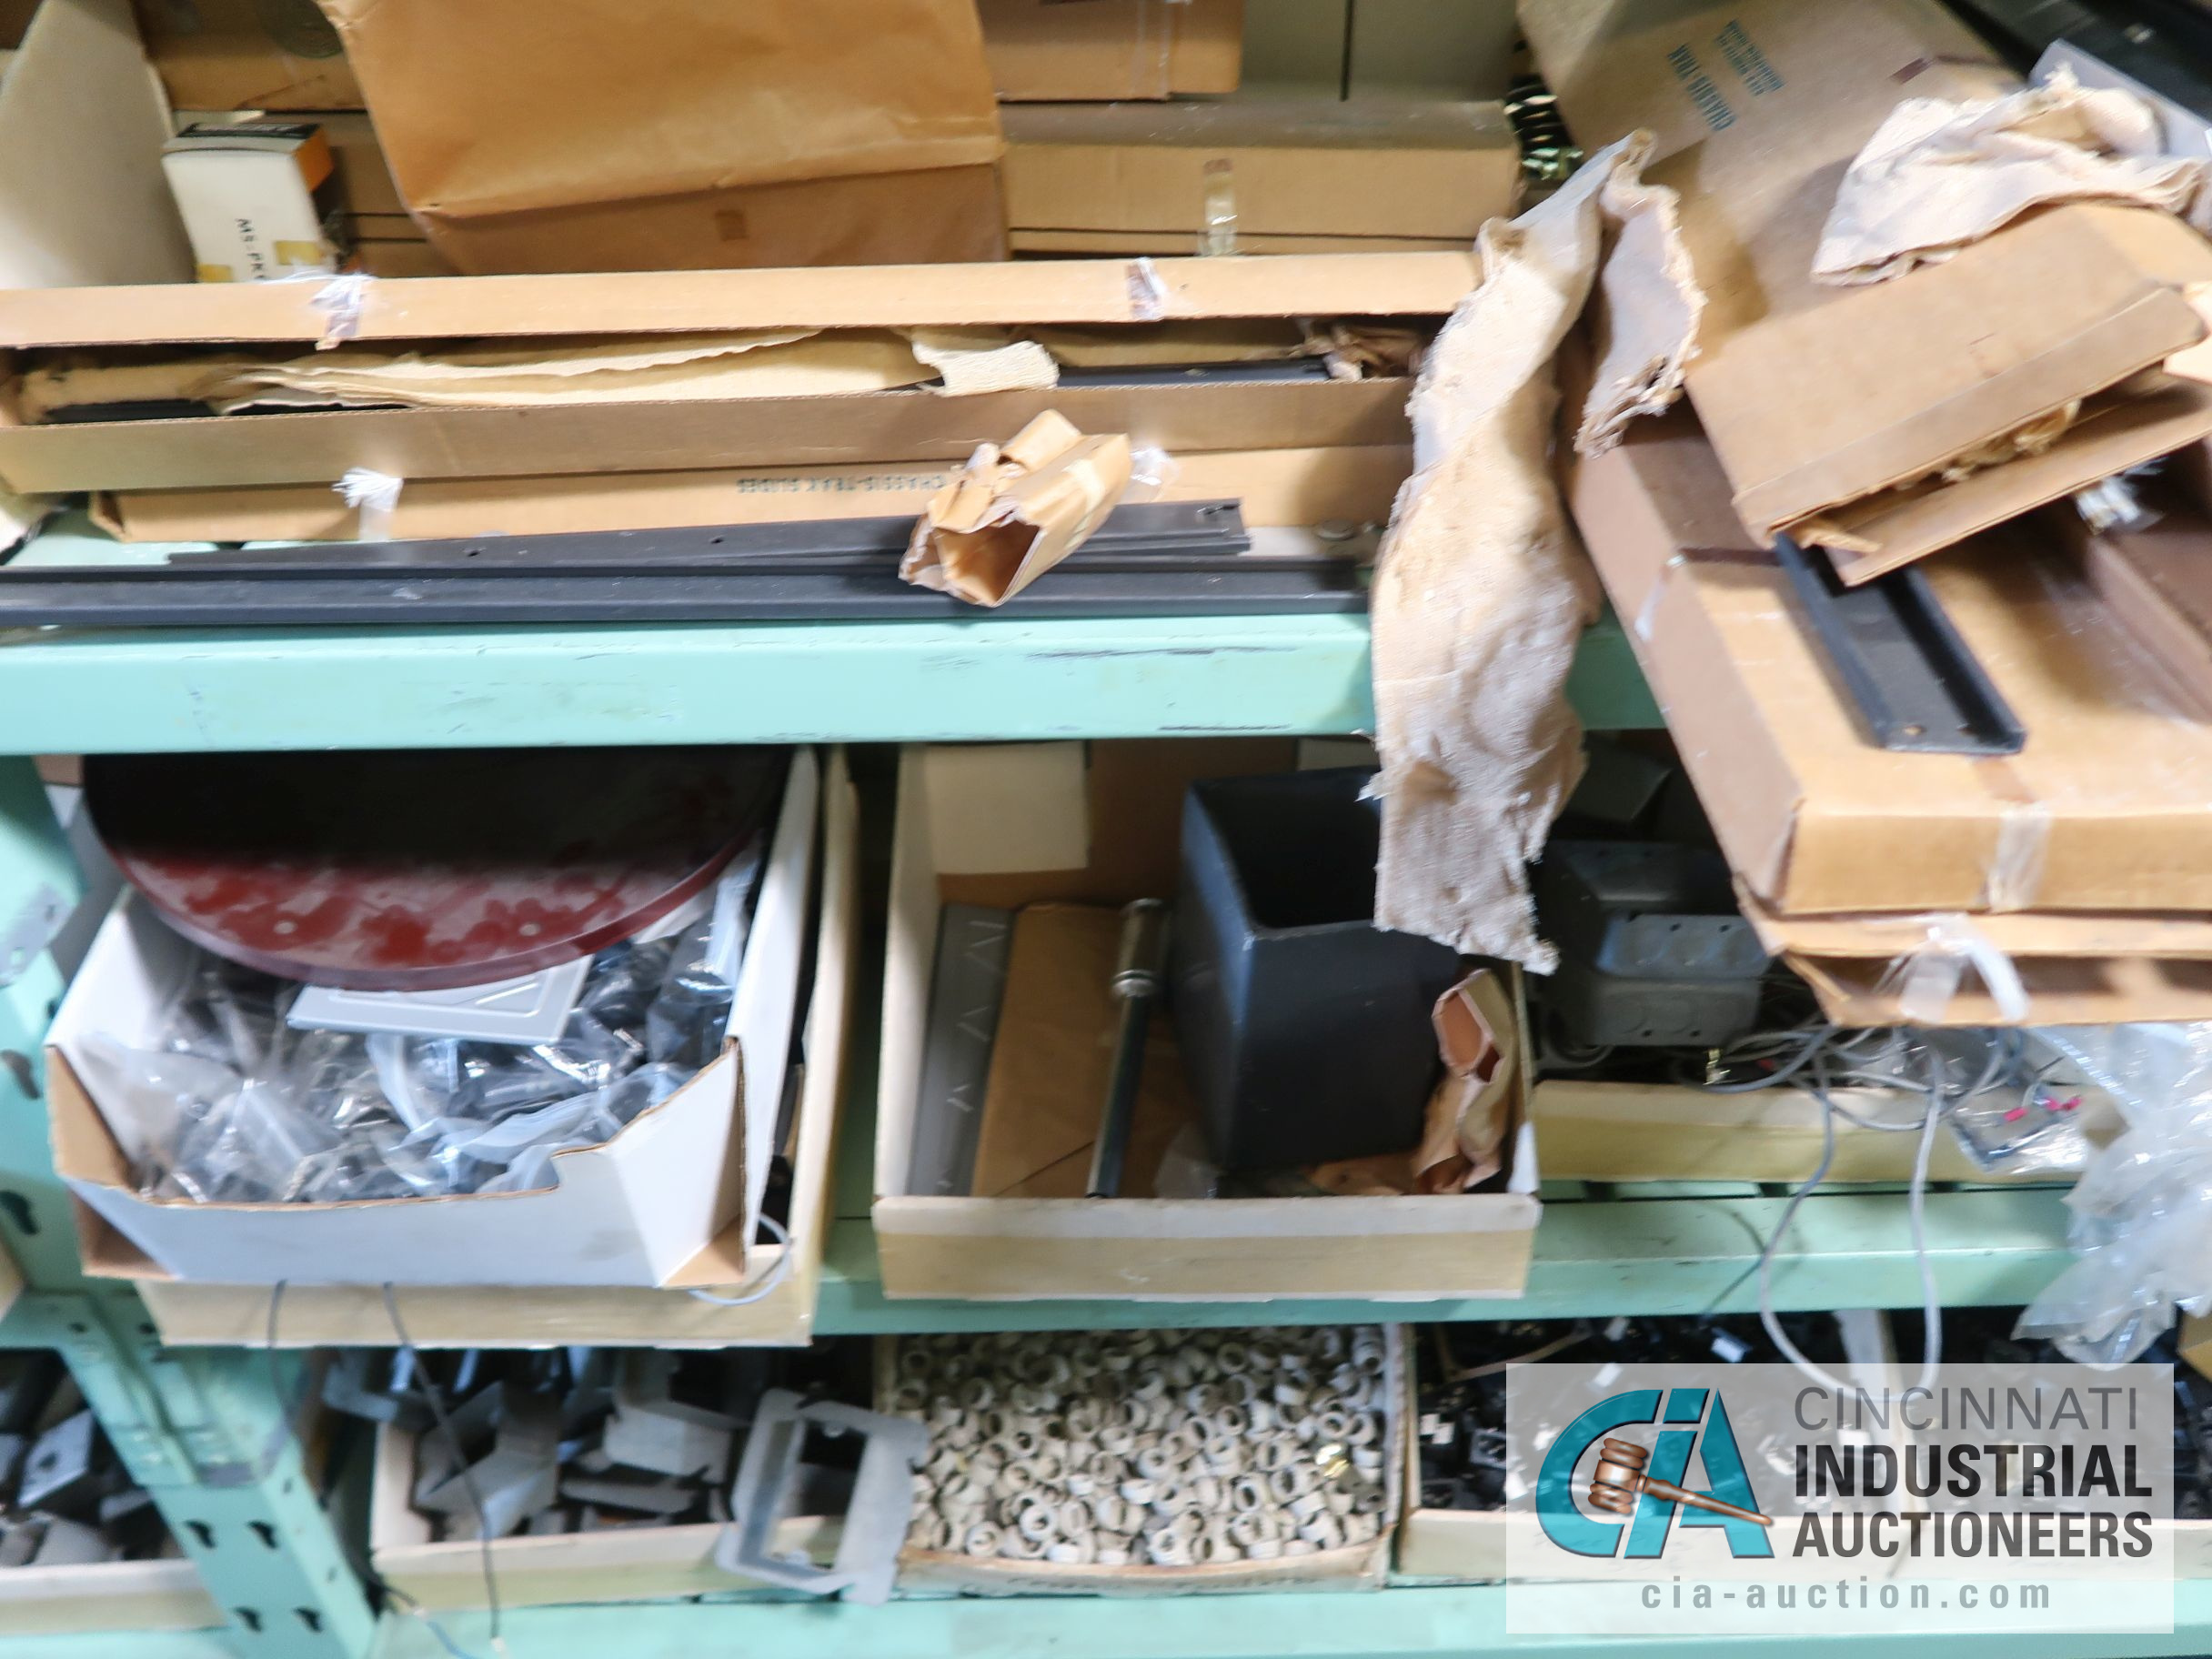 CONTENTS OF (6) RACKS INCLUDING MISCELLANEOUS AUTOMOTIVE PARTS, BREAKS, ROTORS, GASKETS, MOUNTING - Image 11 of 38